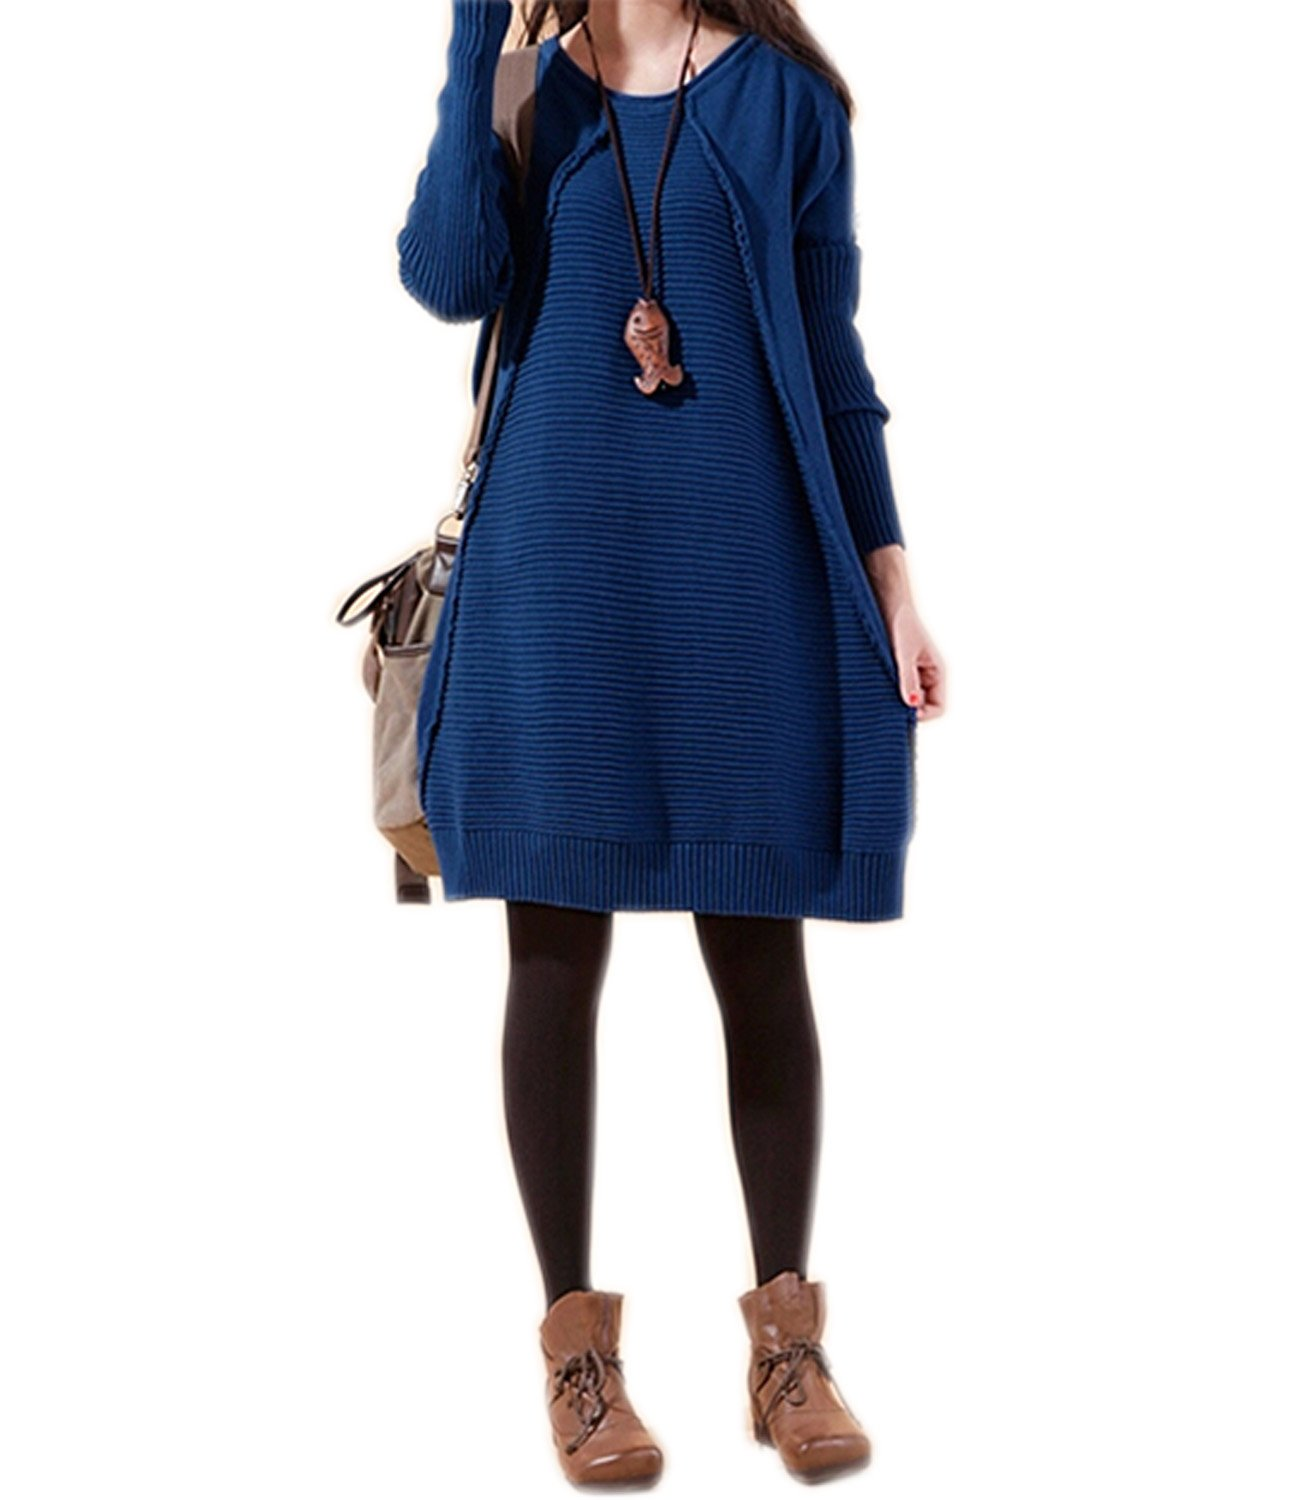 Medeshe Women's Knitted Pull Over Sweater Dress 100% Cotton (US 12/14, Blue)